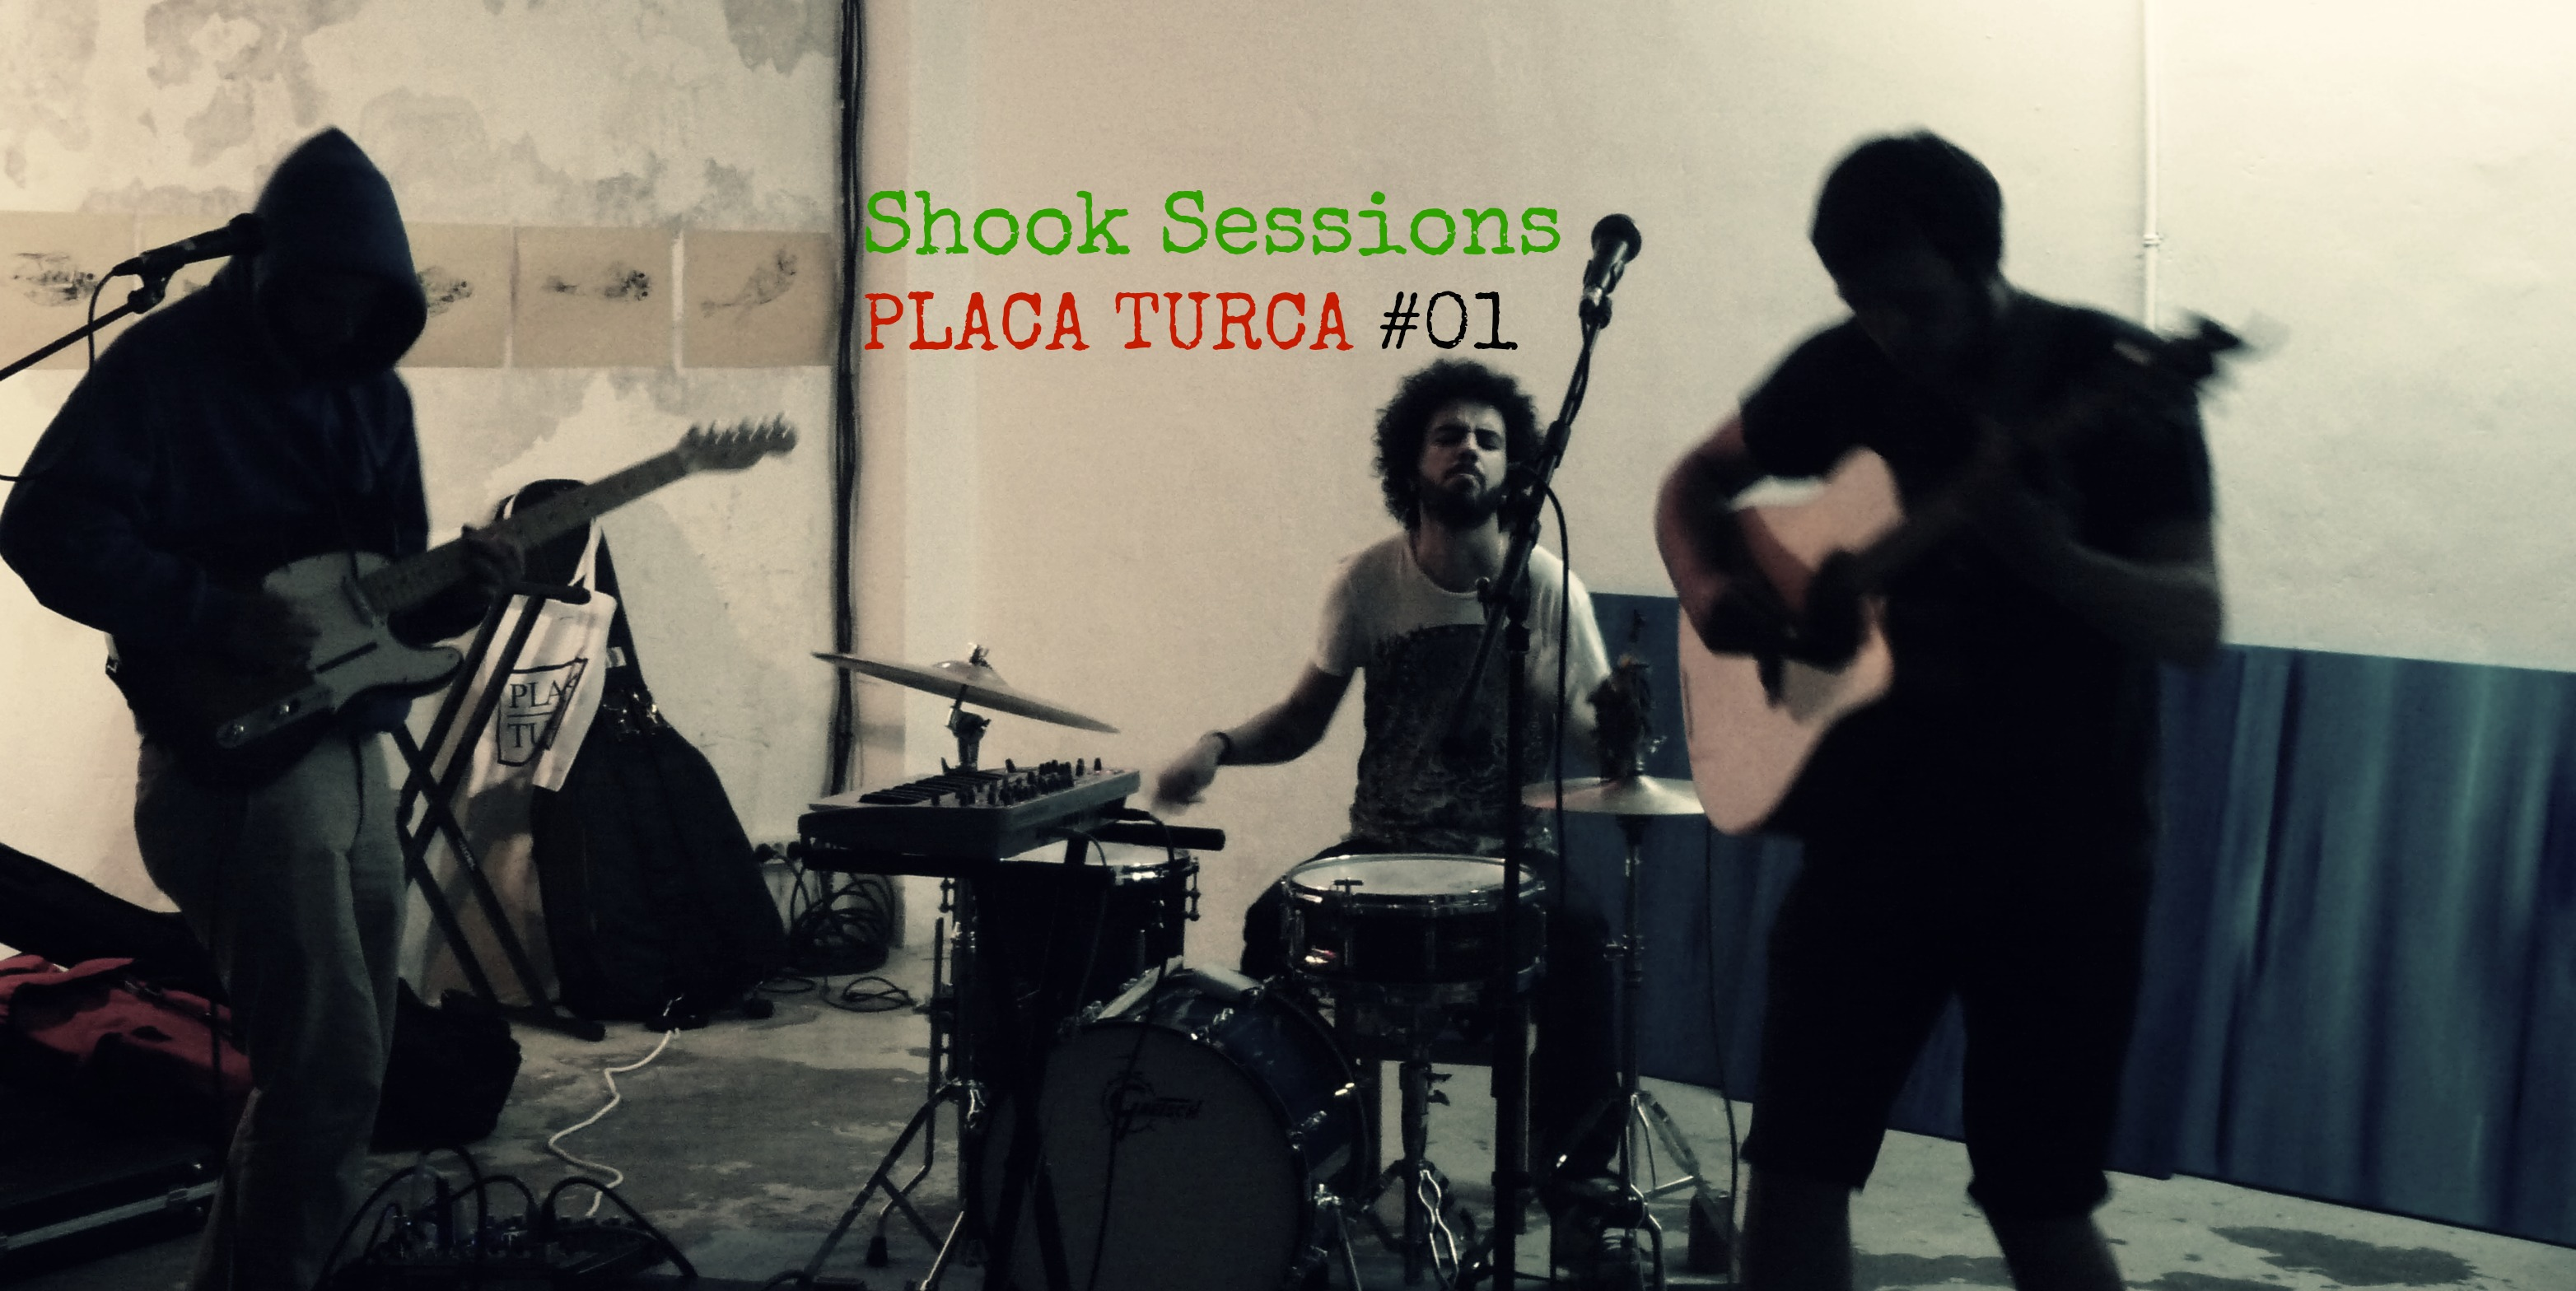 Shook Sessions en PLACA TURCA #01